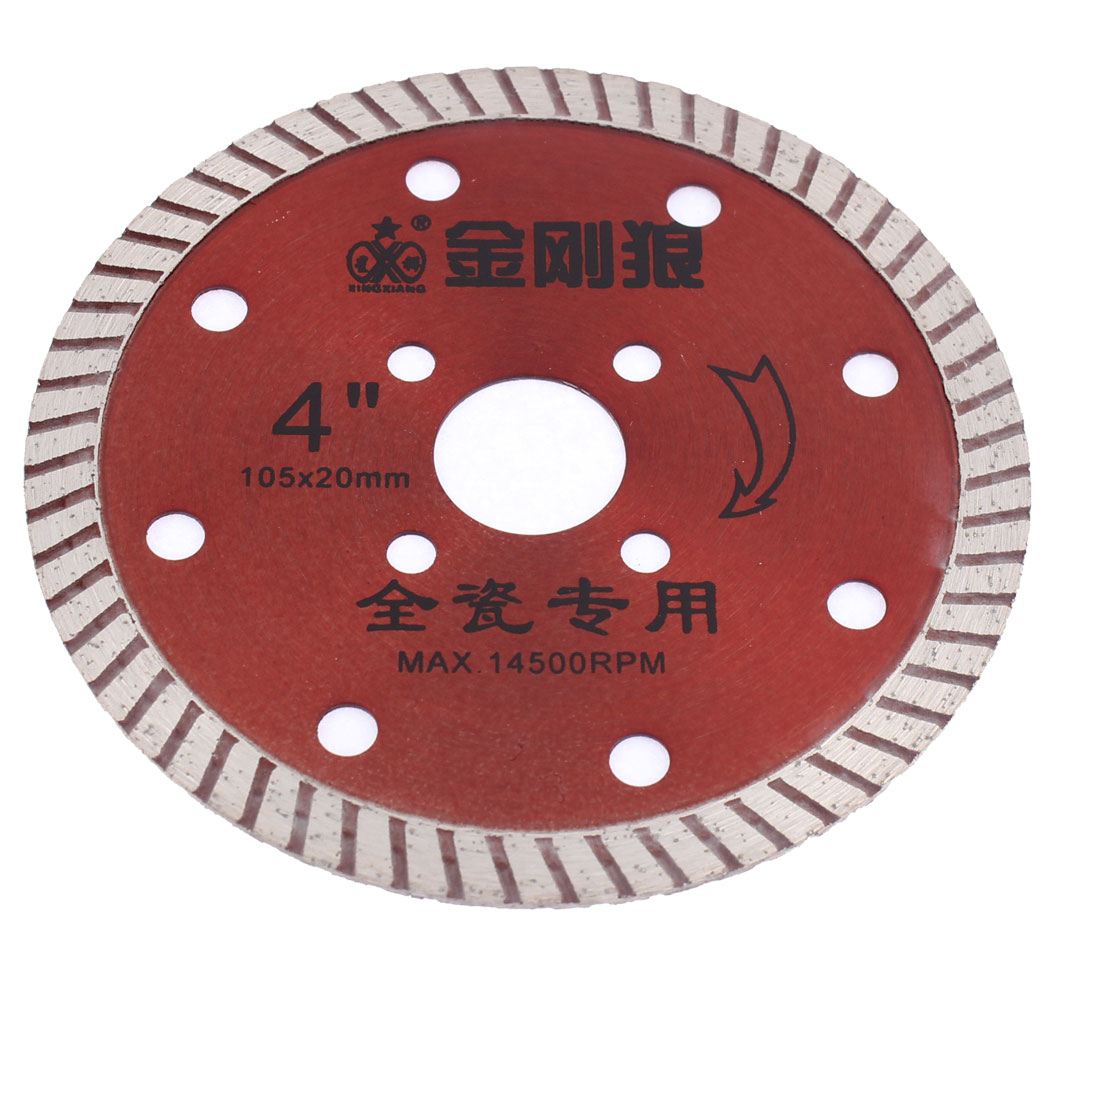 105mmx20mm Diamond Grinding Polishing Wheel Saw Cutter Red for Ceramic